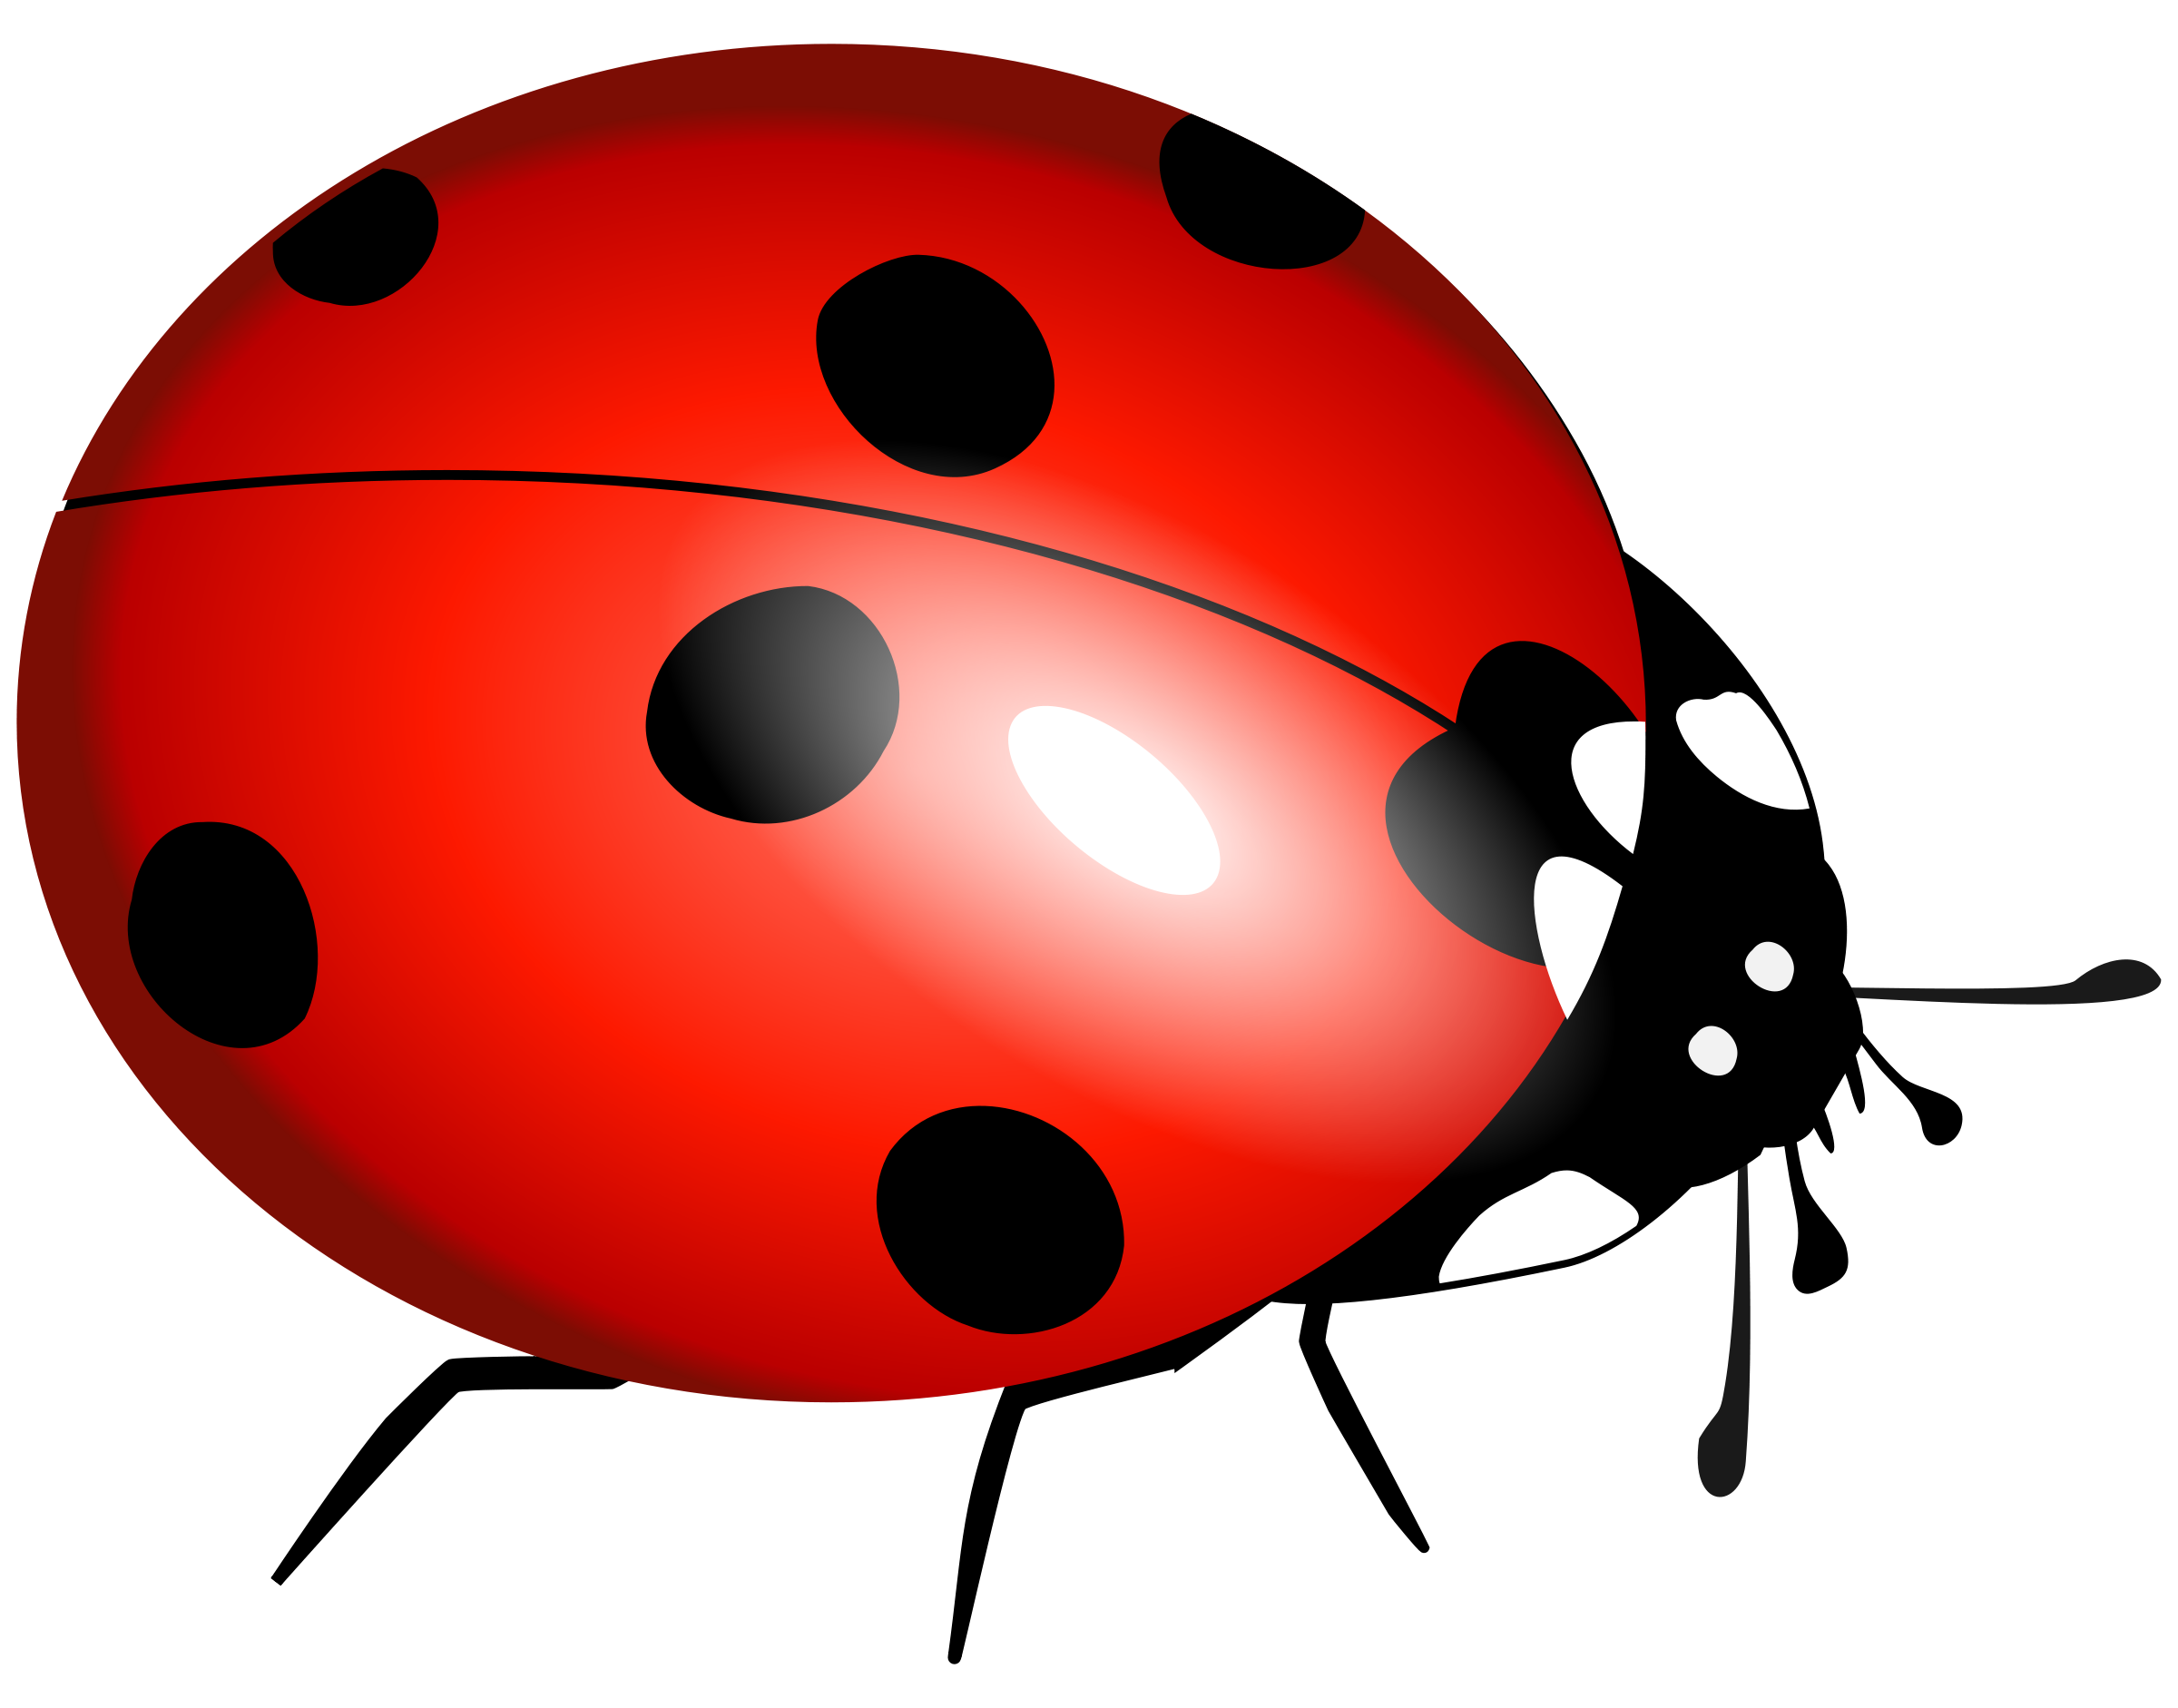 Ladybug flying clipart png library Ladybug Flying Clipart | Clipart Panda - Free Clipart Images ... png library